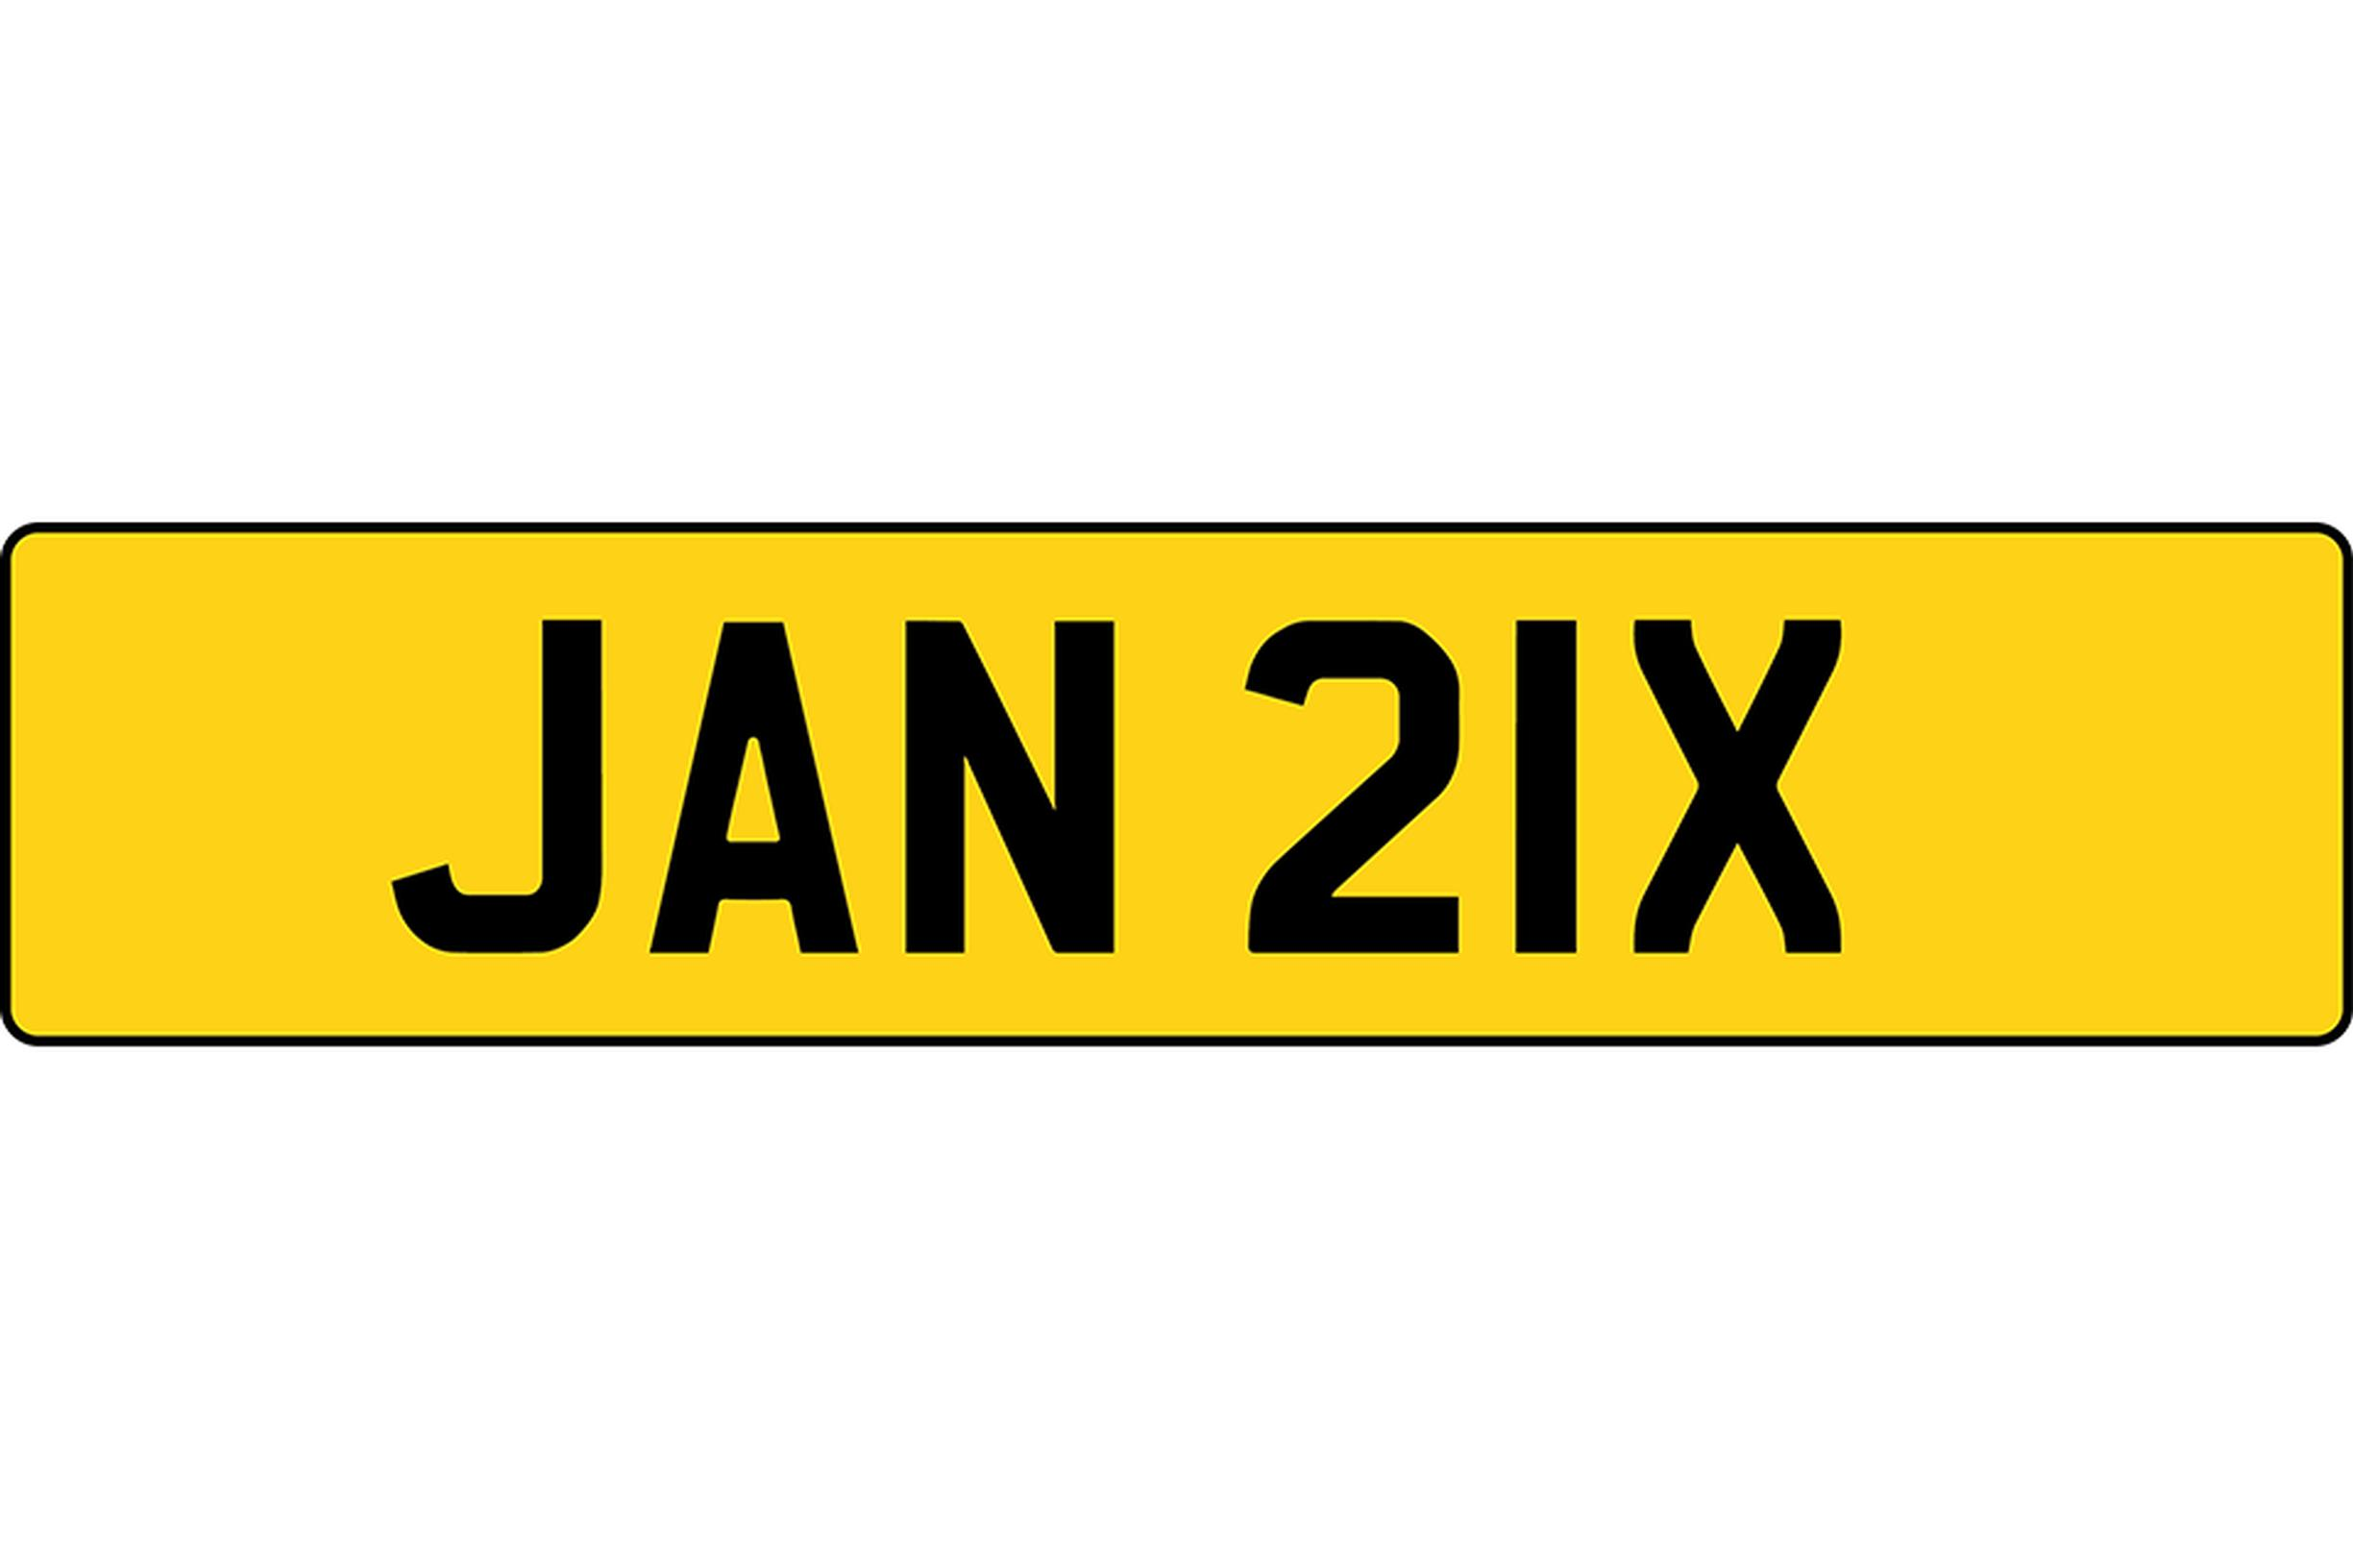 The new UK number plate format